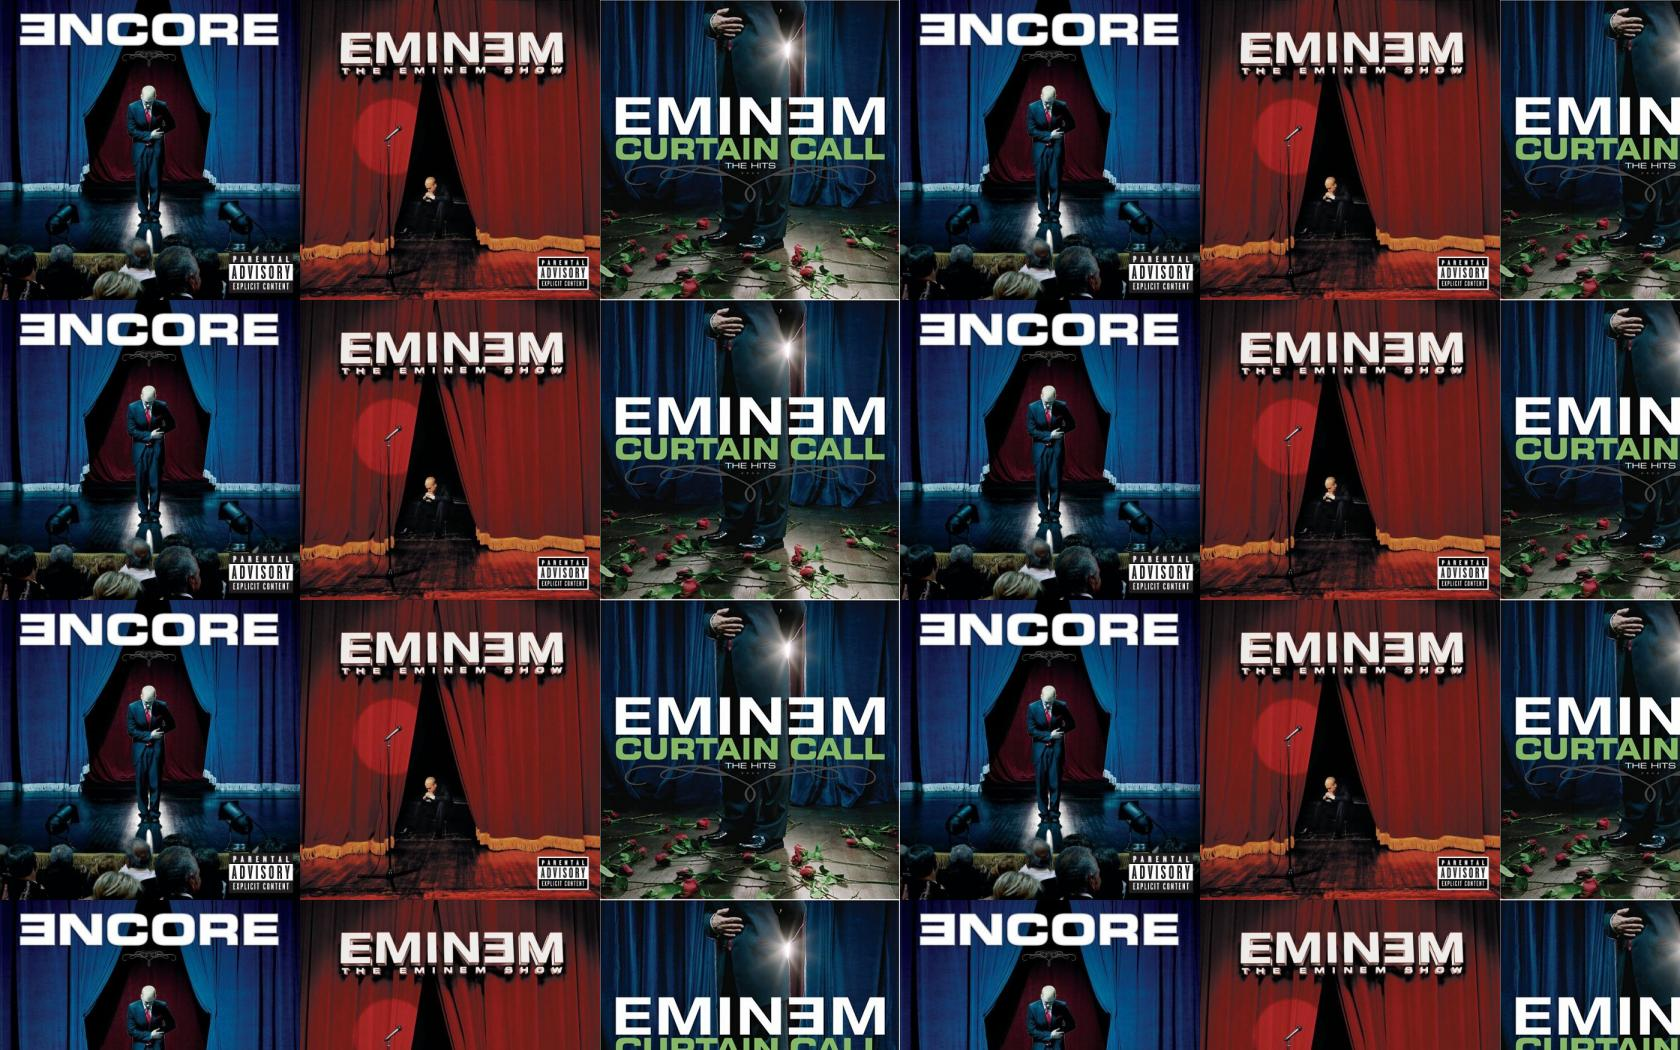 Cover art eminem curtain call - Download This Free Wallpaper With Images Of Eminem Encore Eminem The Eminem Show Eminem Curtain Call